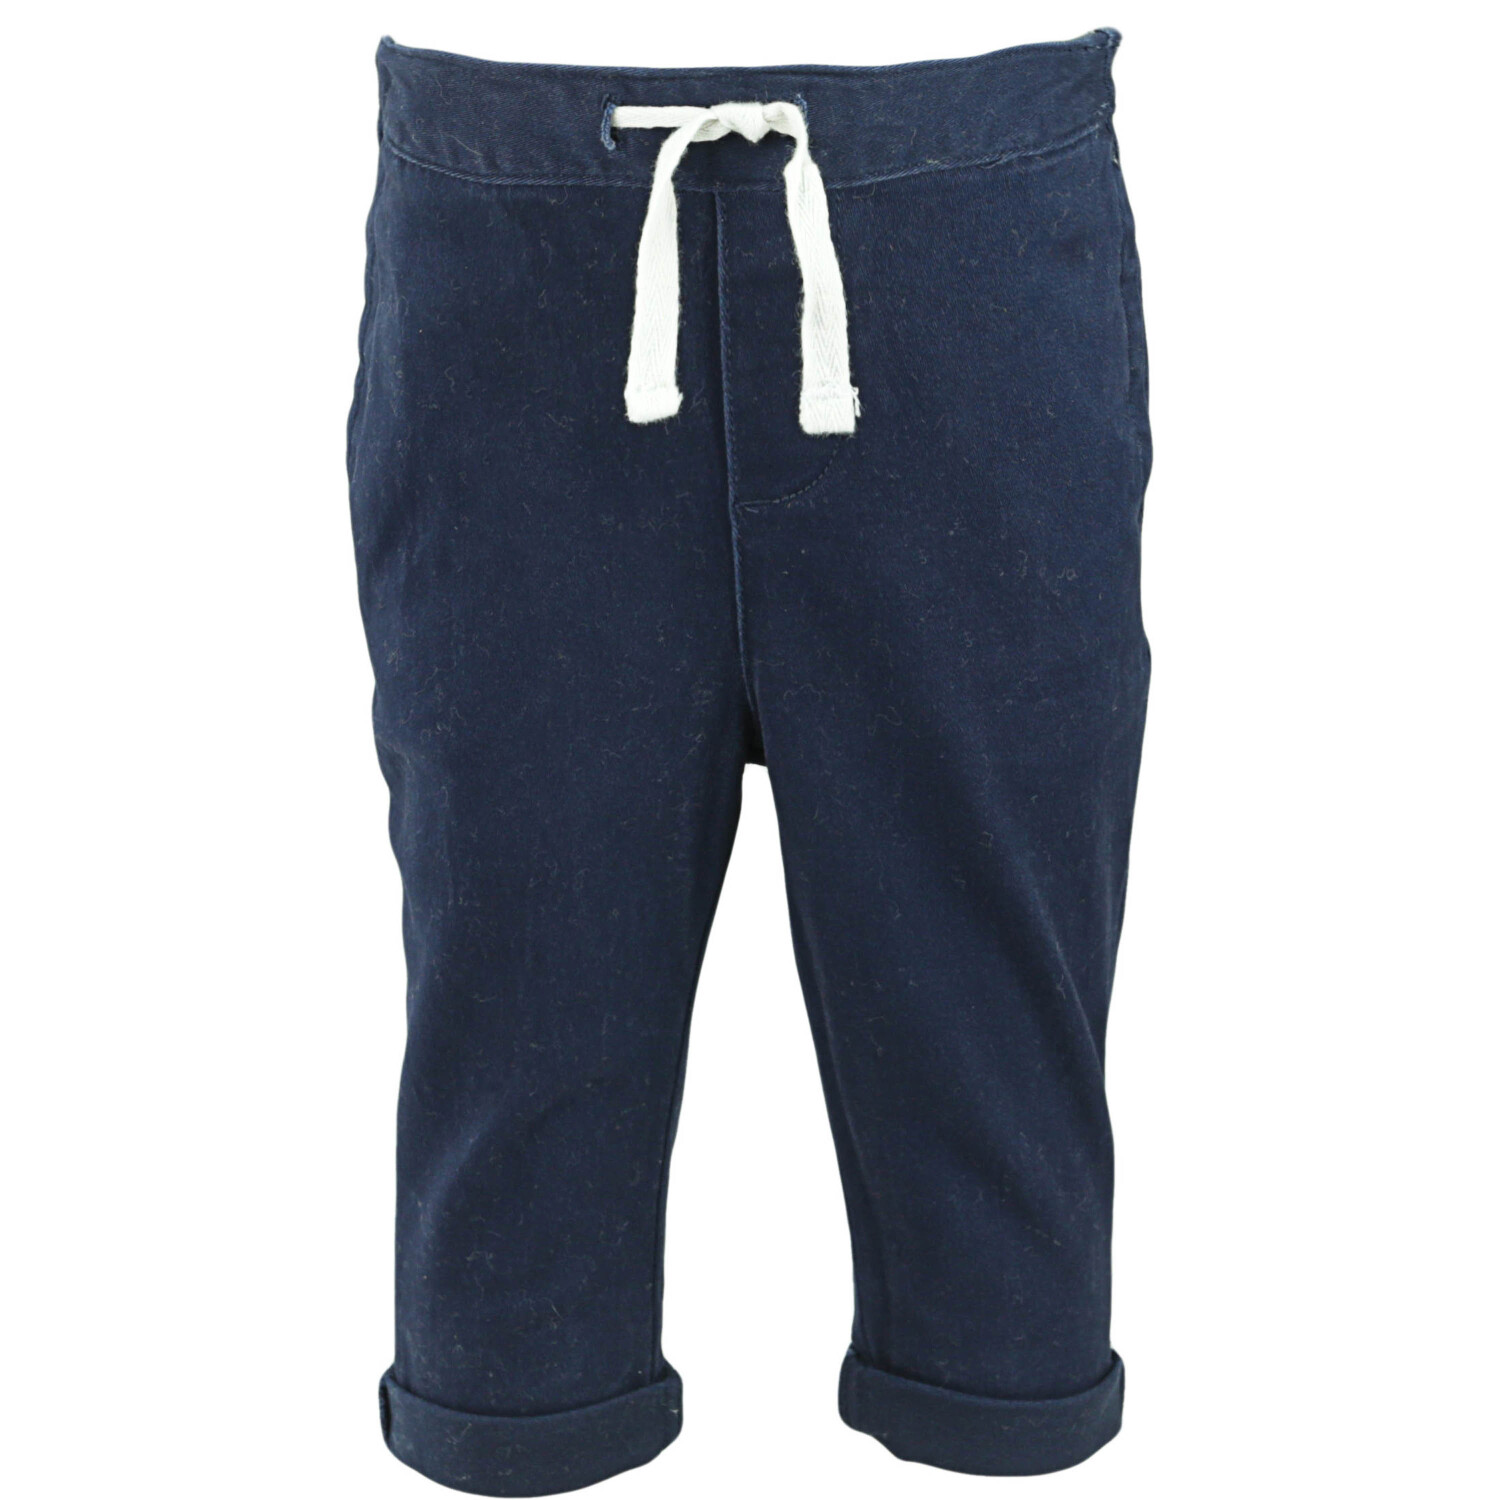 Janie And Jack Boy's Navy Pull On Stretch Twill Pant Pants - 12-18 Months